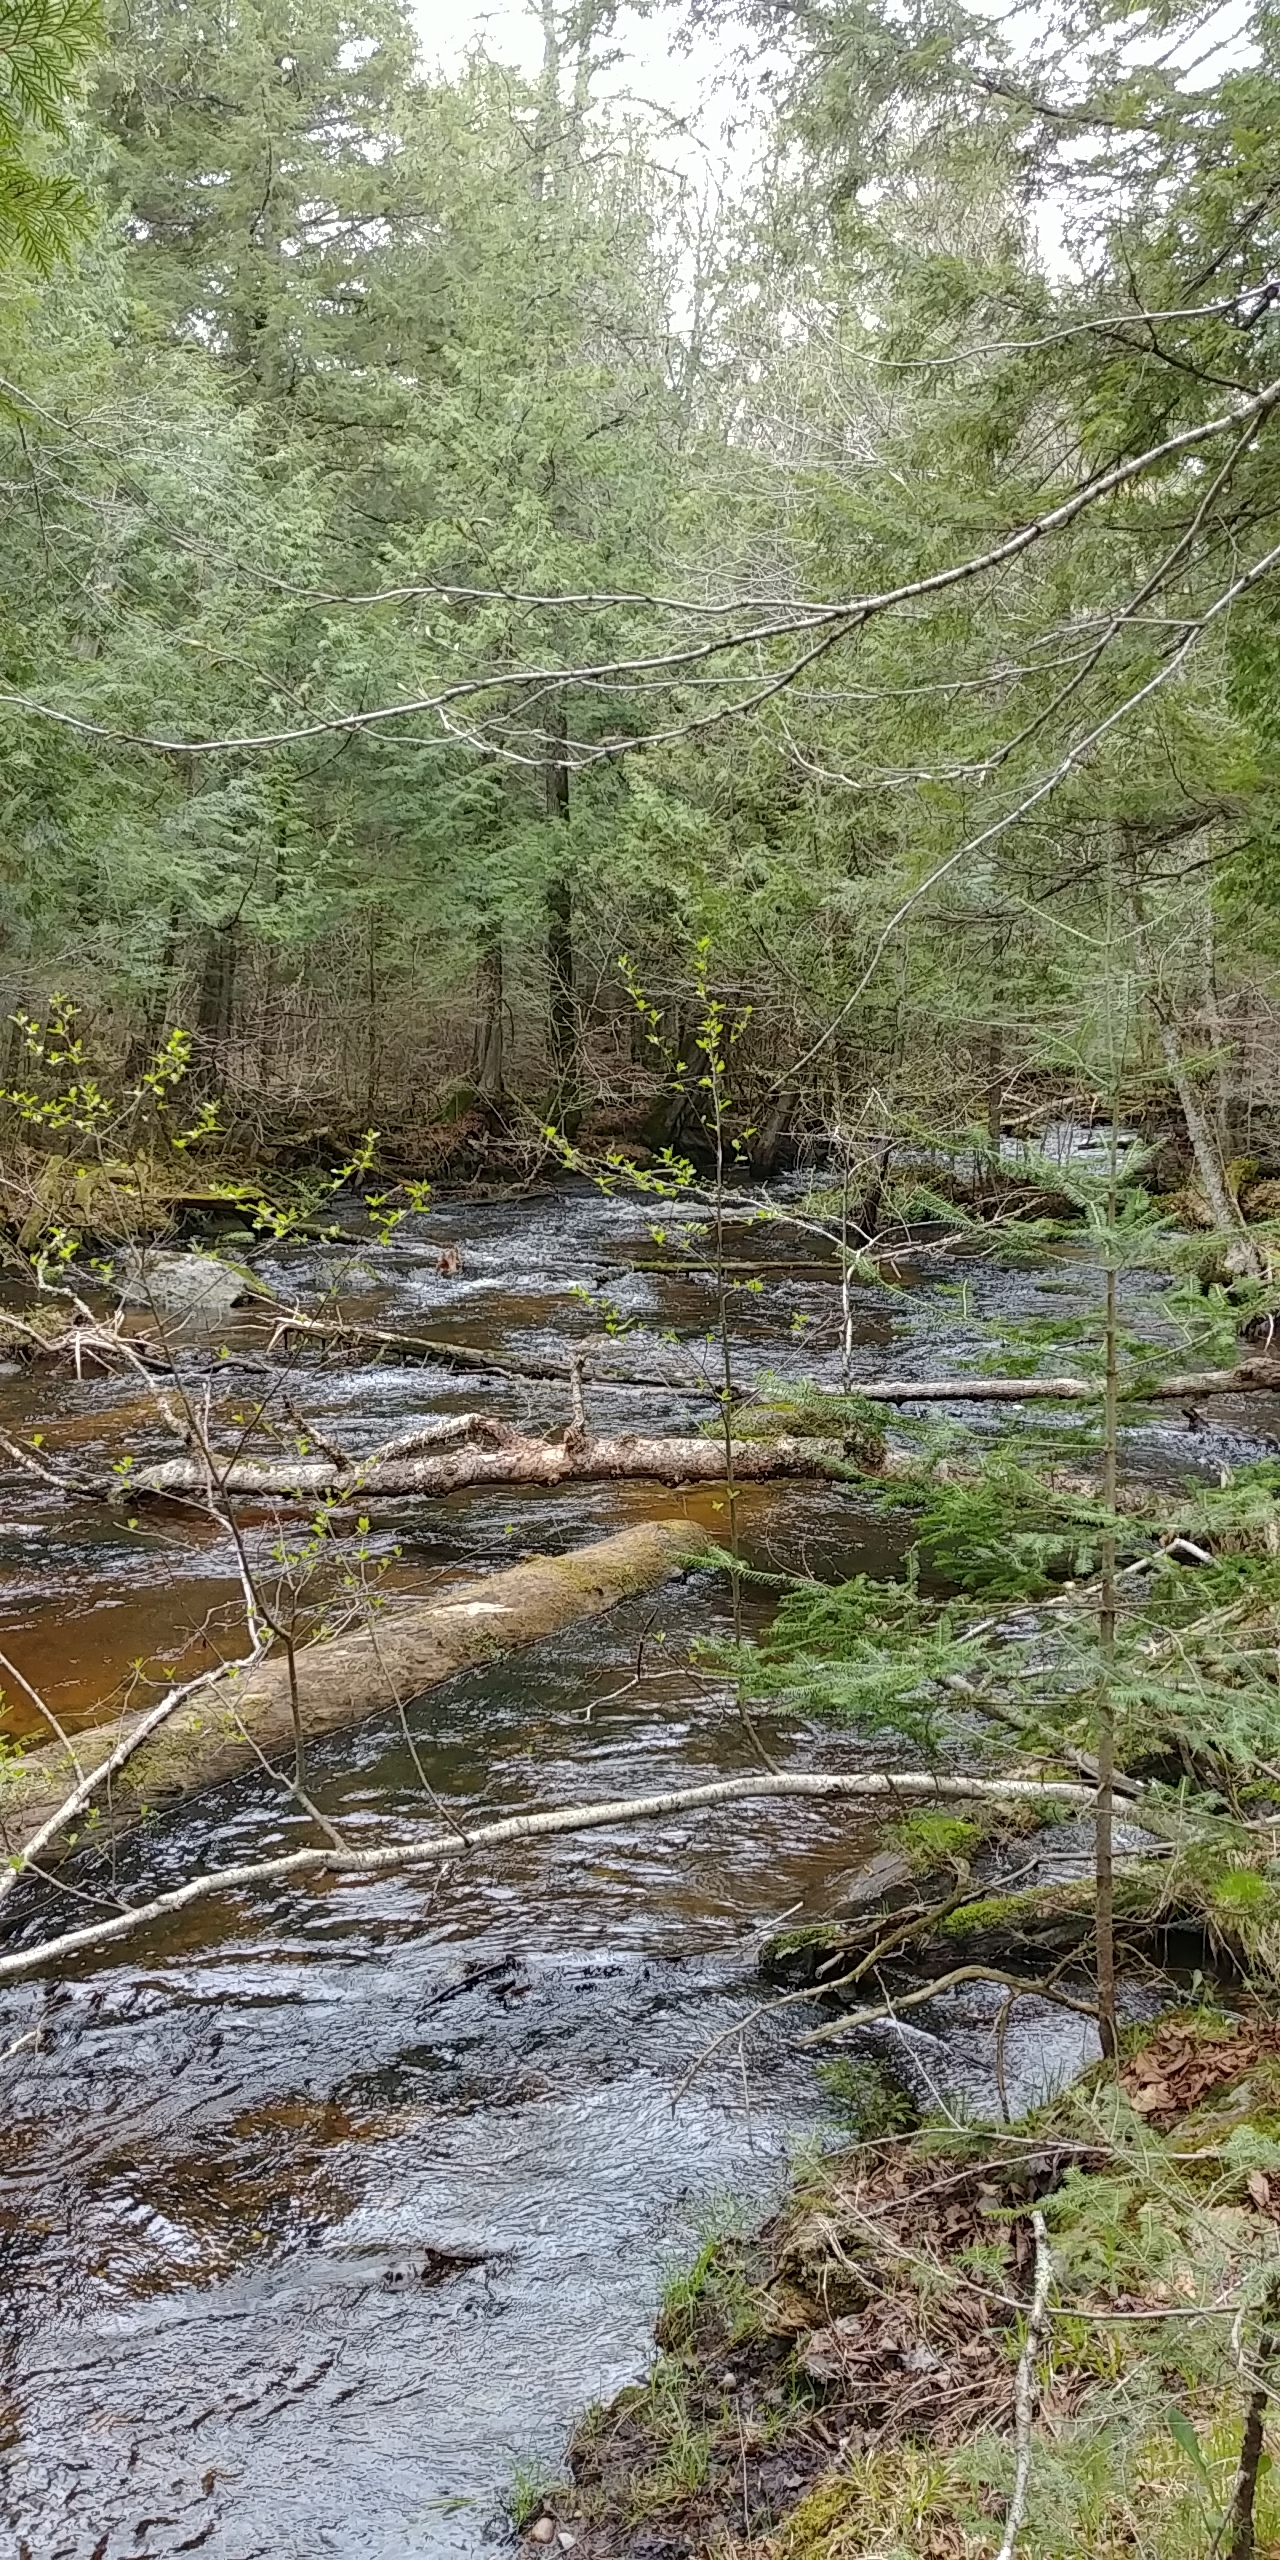 Creek in the Menominee Forest